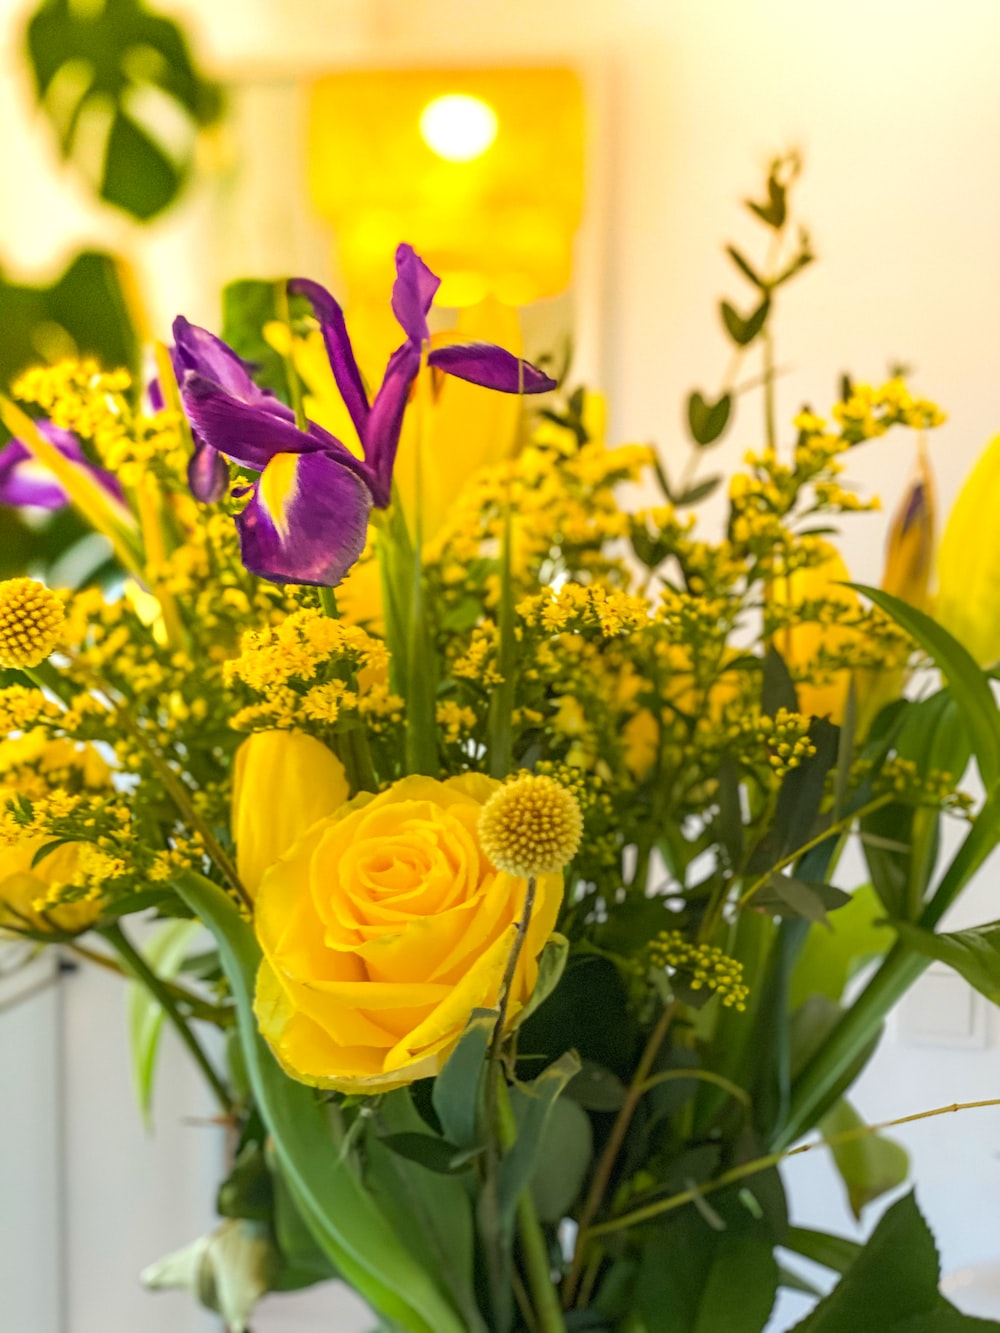 yellow and purple flowers in bloom during daytime